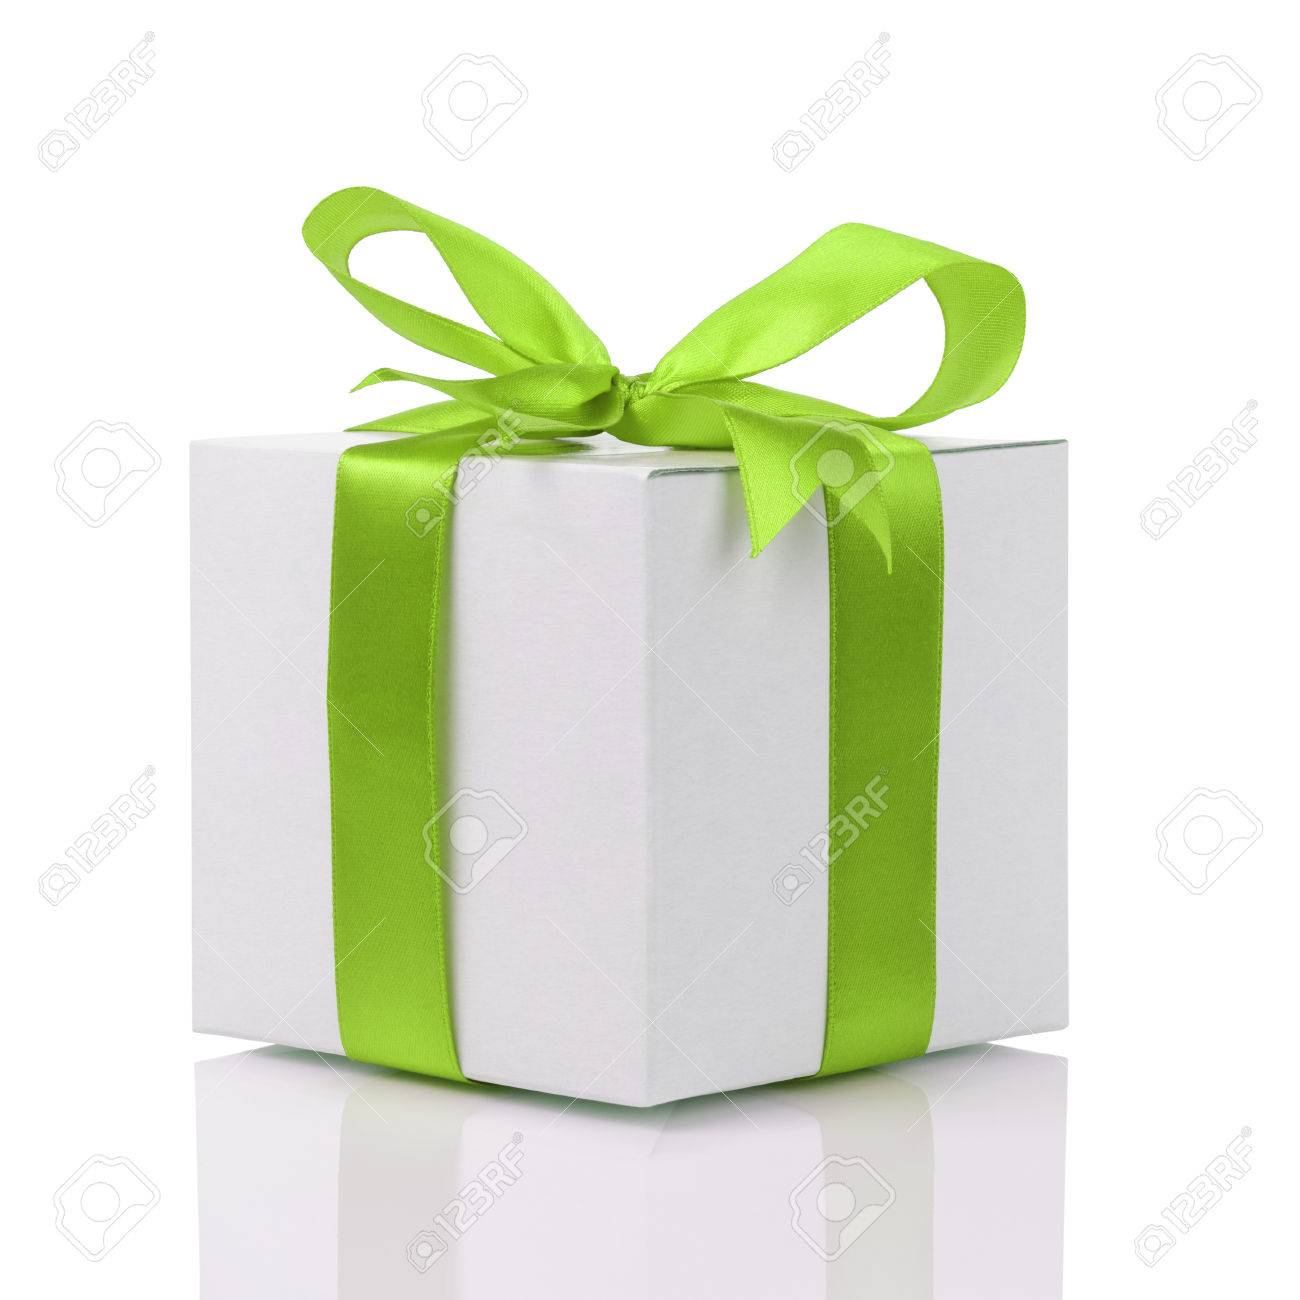 gift box with handmade green ribbon bow, isolated on white - 32315514